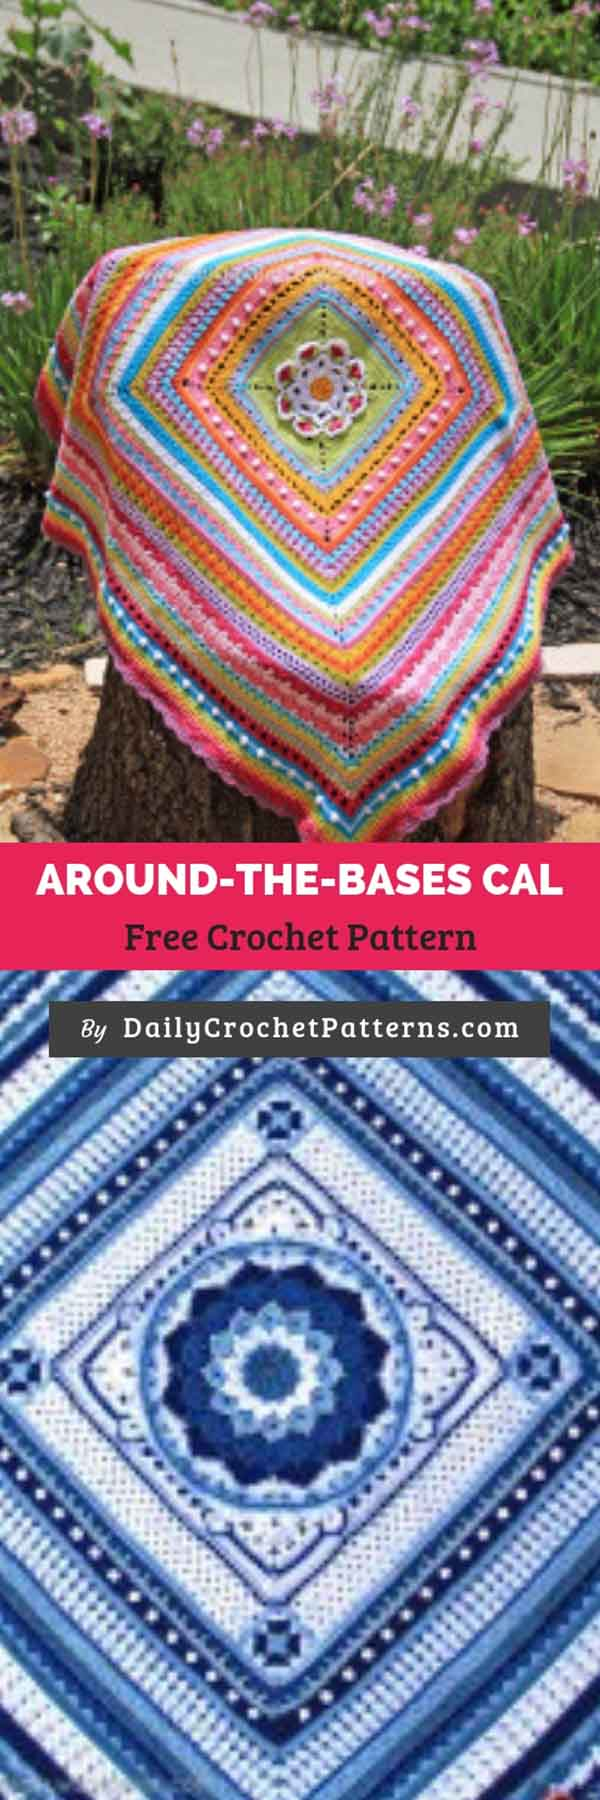 Around-the-Bases cal Free Crochet Pattern